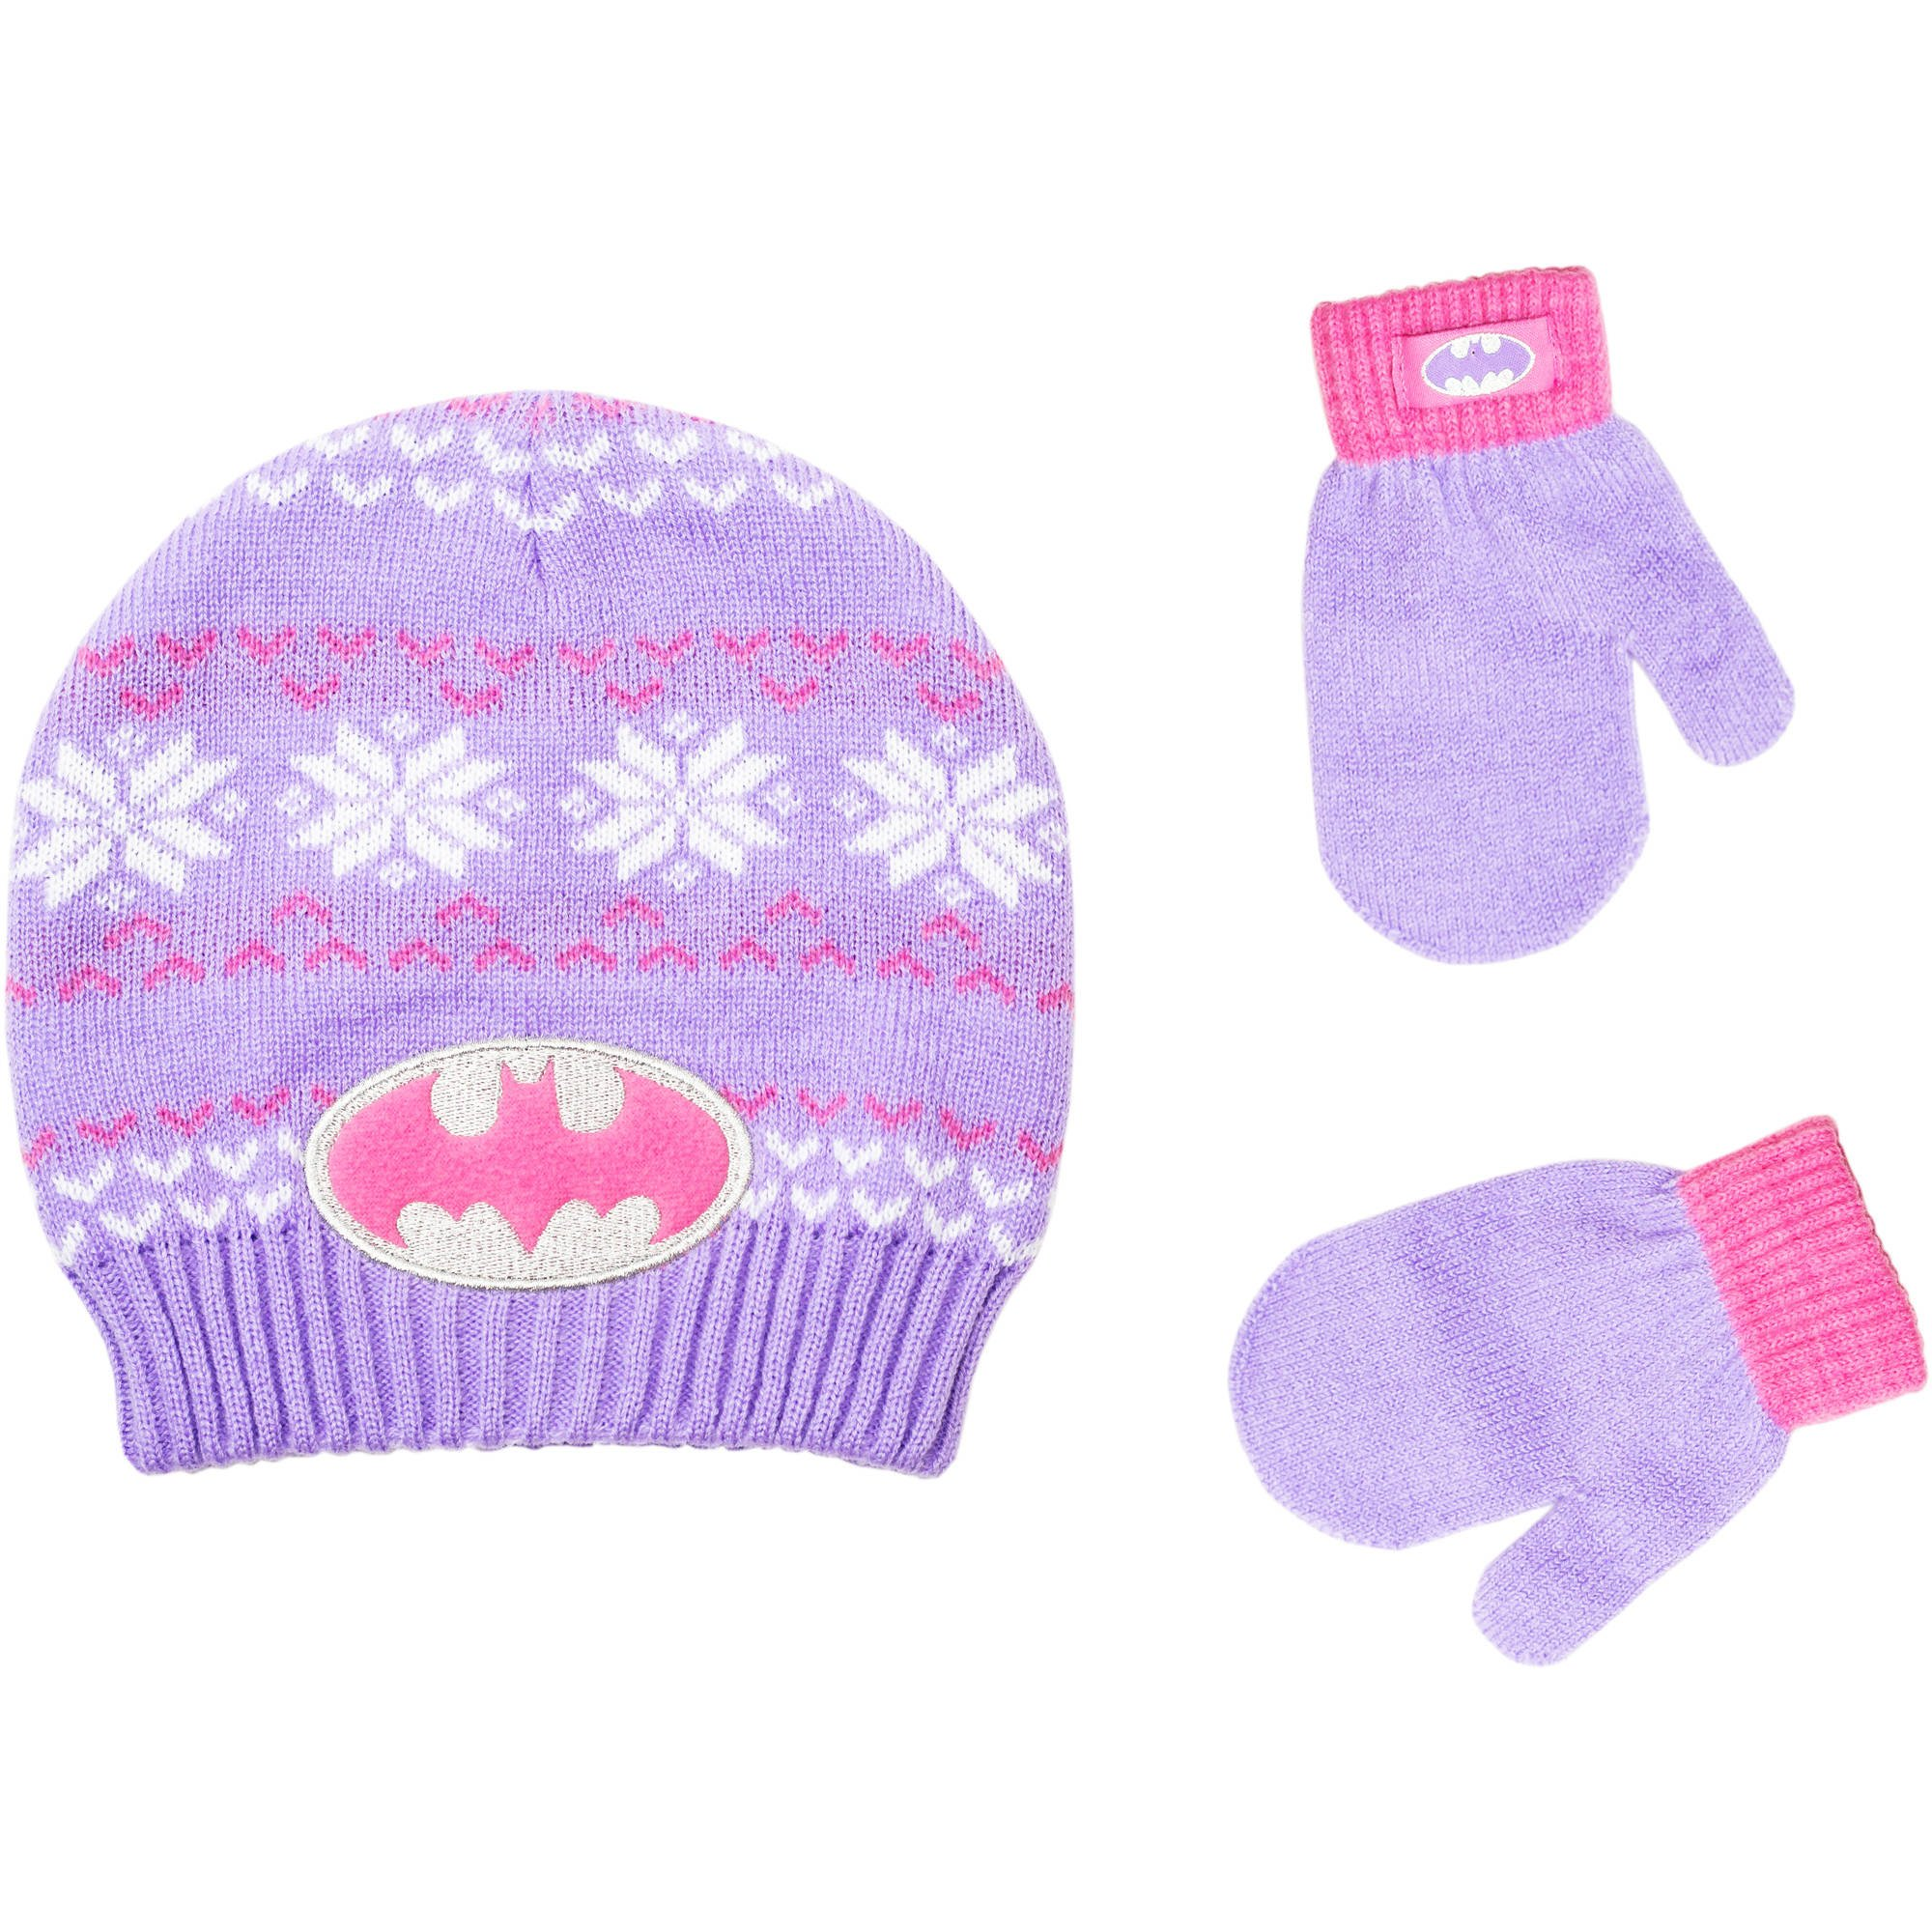 a9de07610b7 Get Quotations · Batgirl Infant Toddler Girl Knit Beanie Hat and Mittens Set  Purple